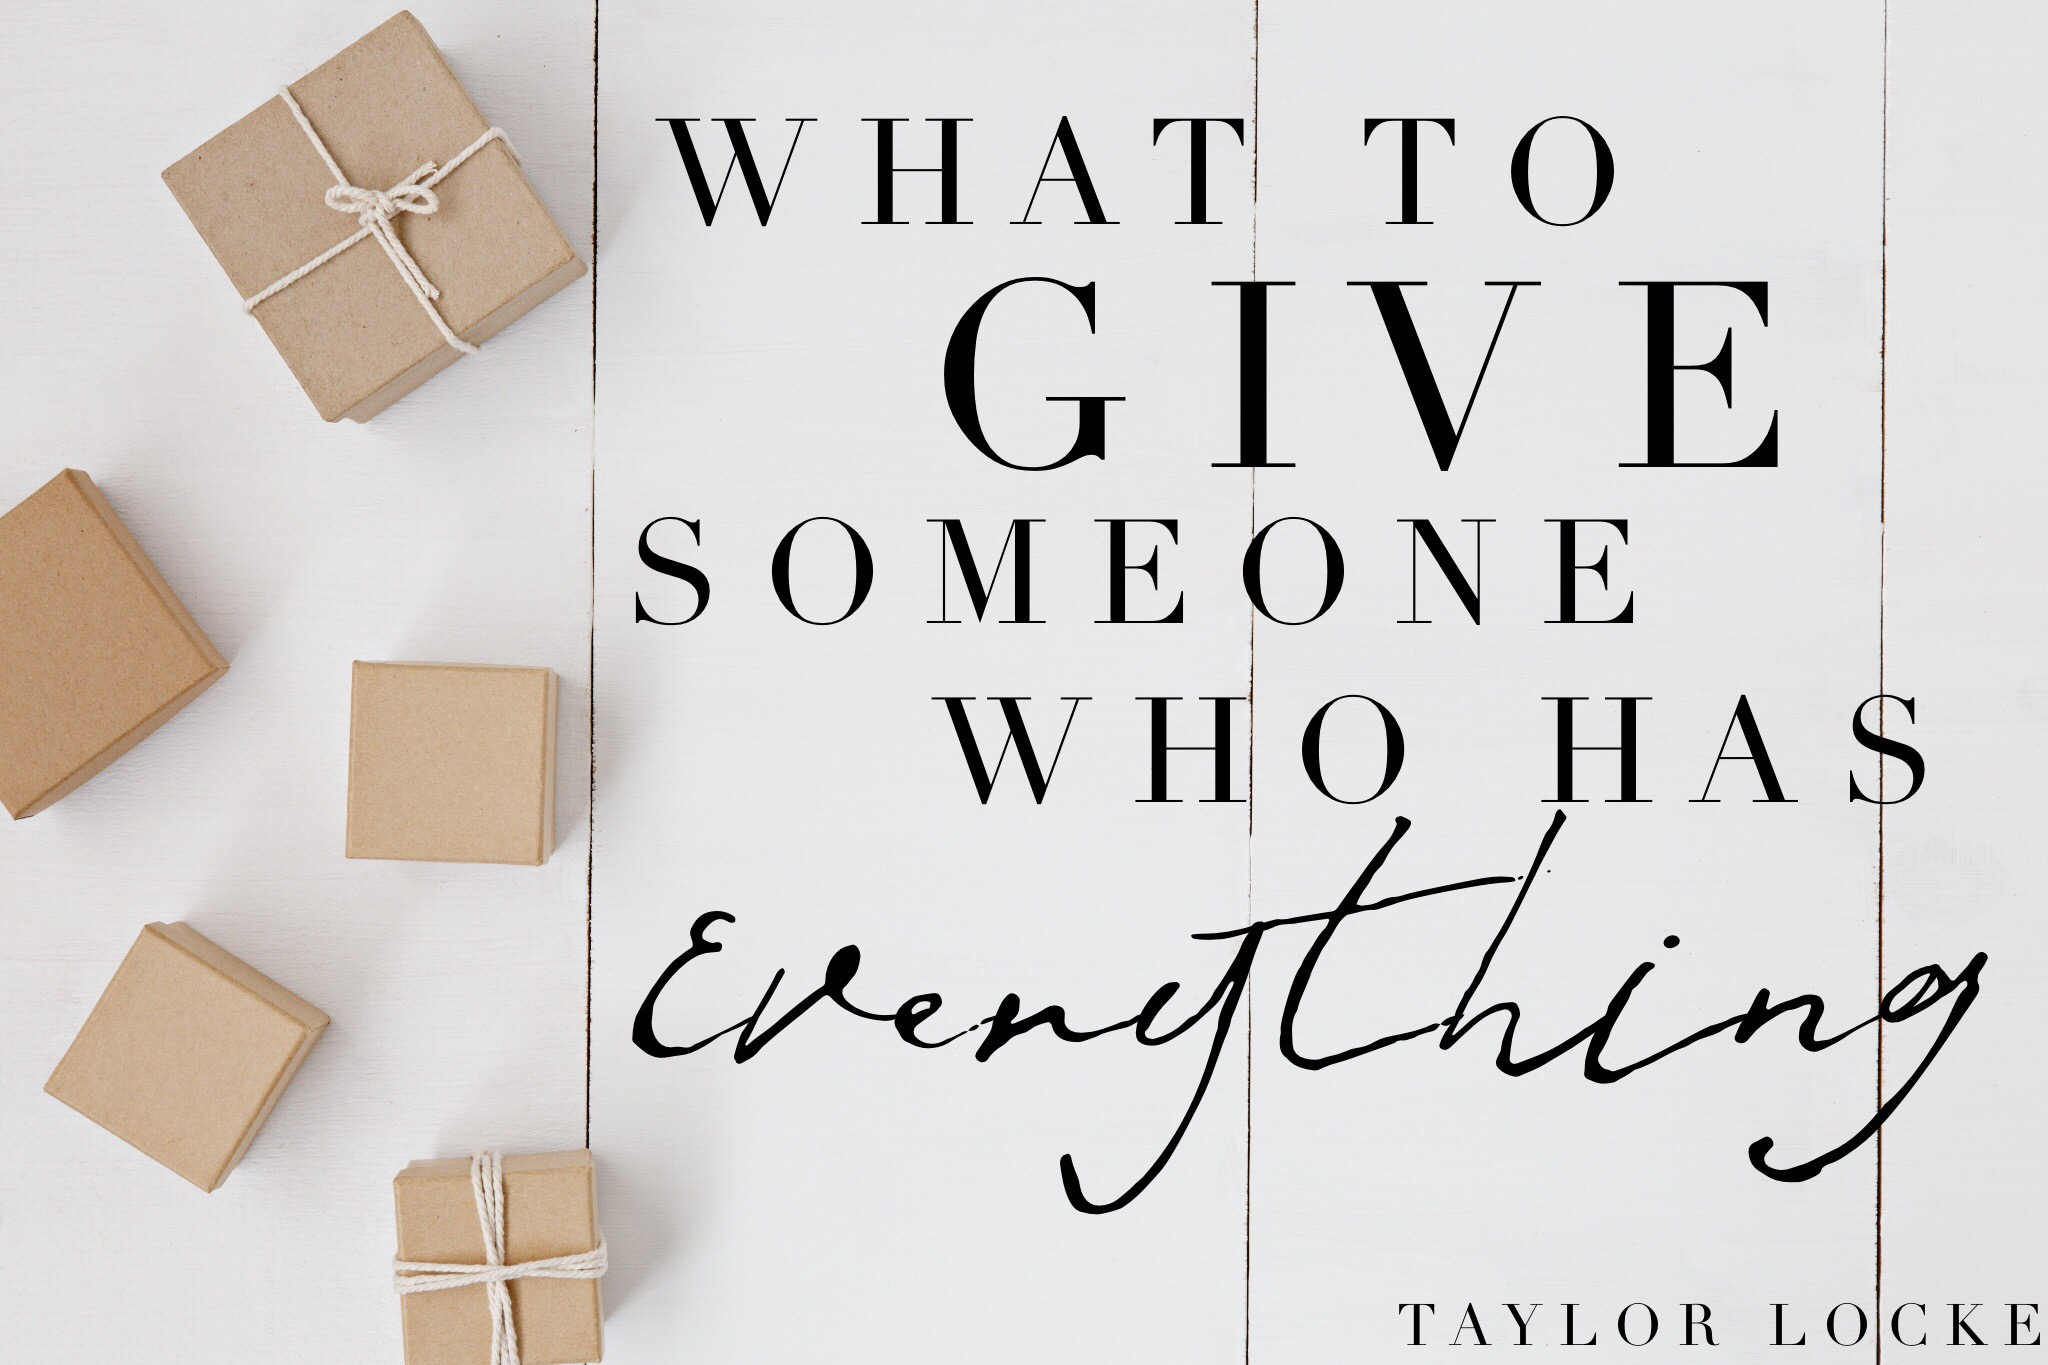 What To Give Someone Who Has Everything